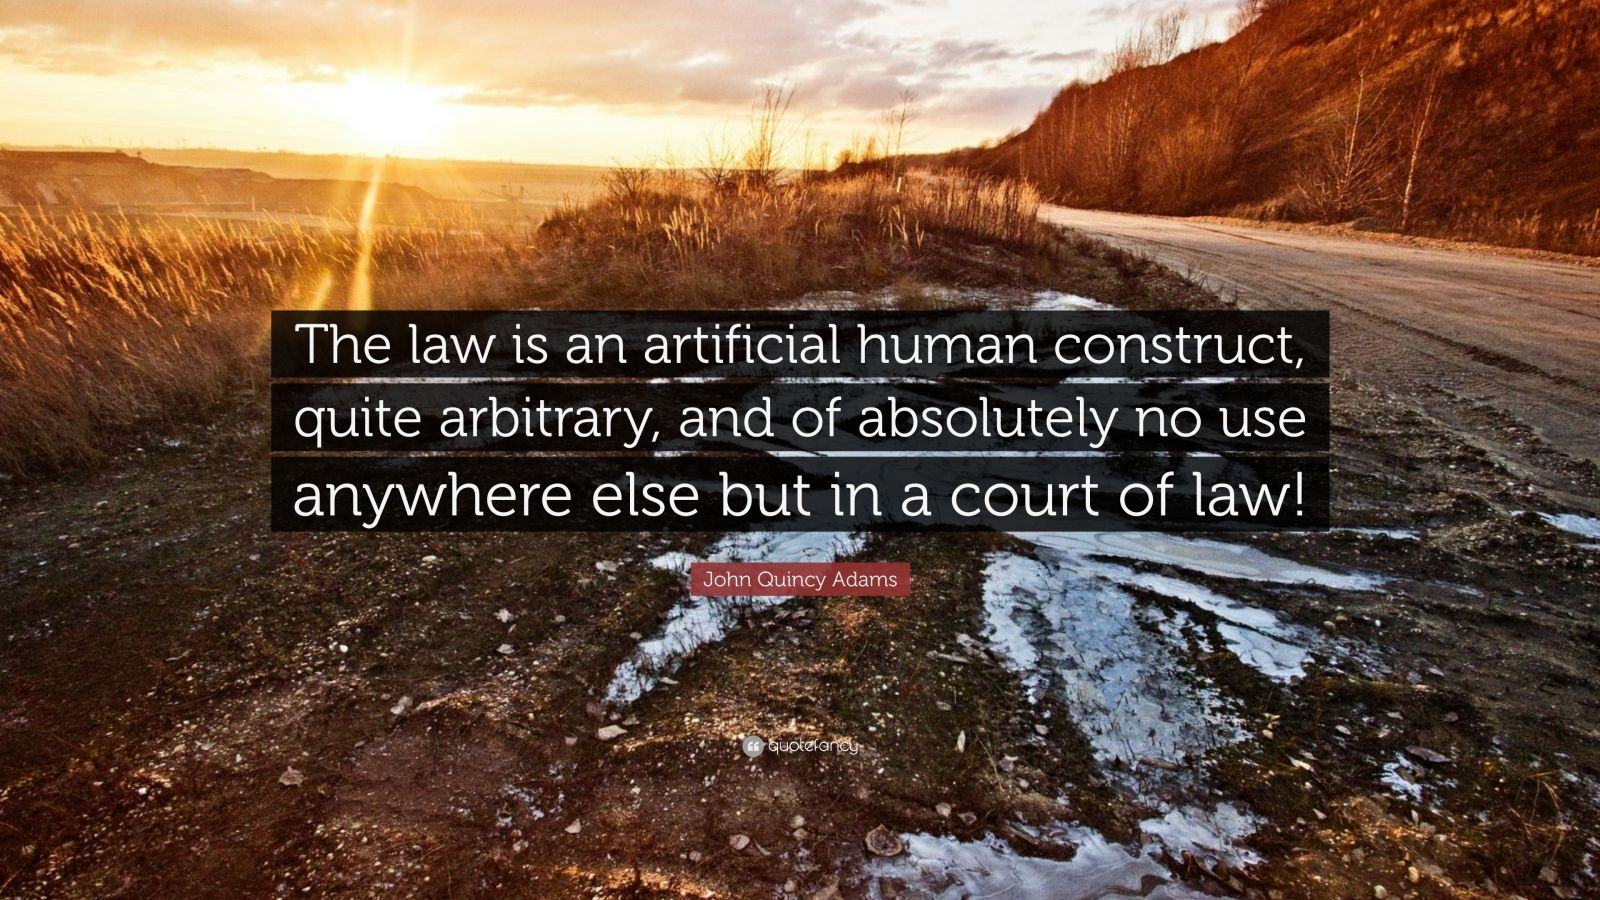 """John Quincy Adams Quote: """"The law is an artificial human construct, quite arbitrary, and of absolutely no use anywhere else but in a court of law!"""""""